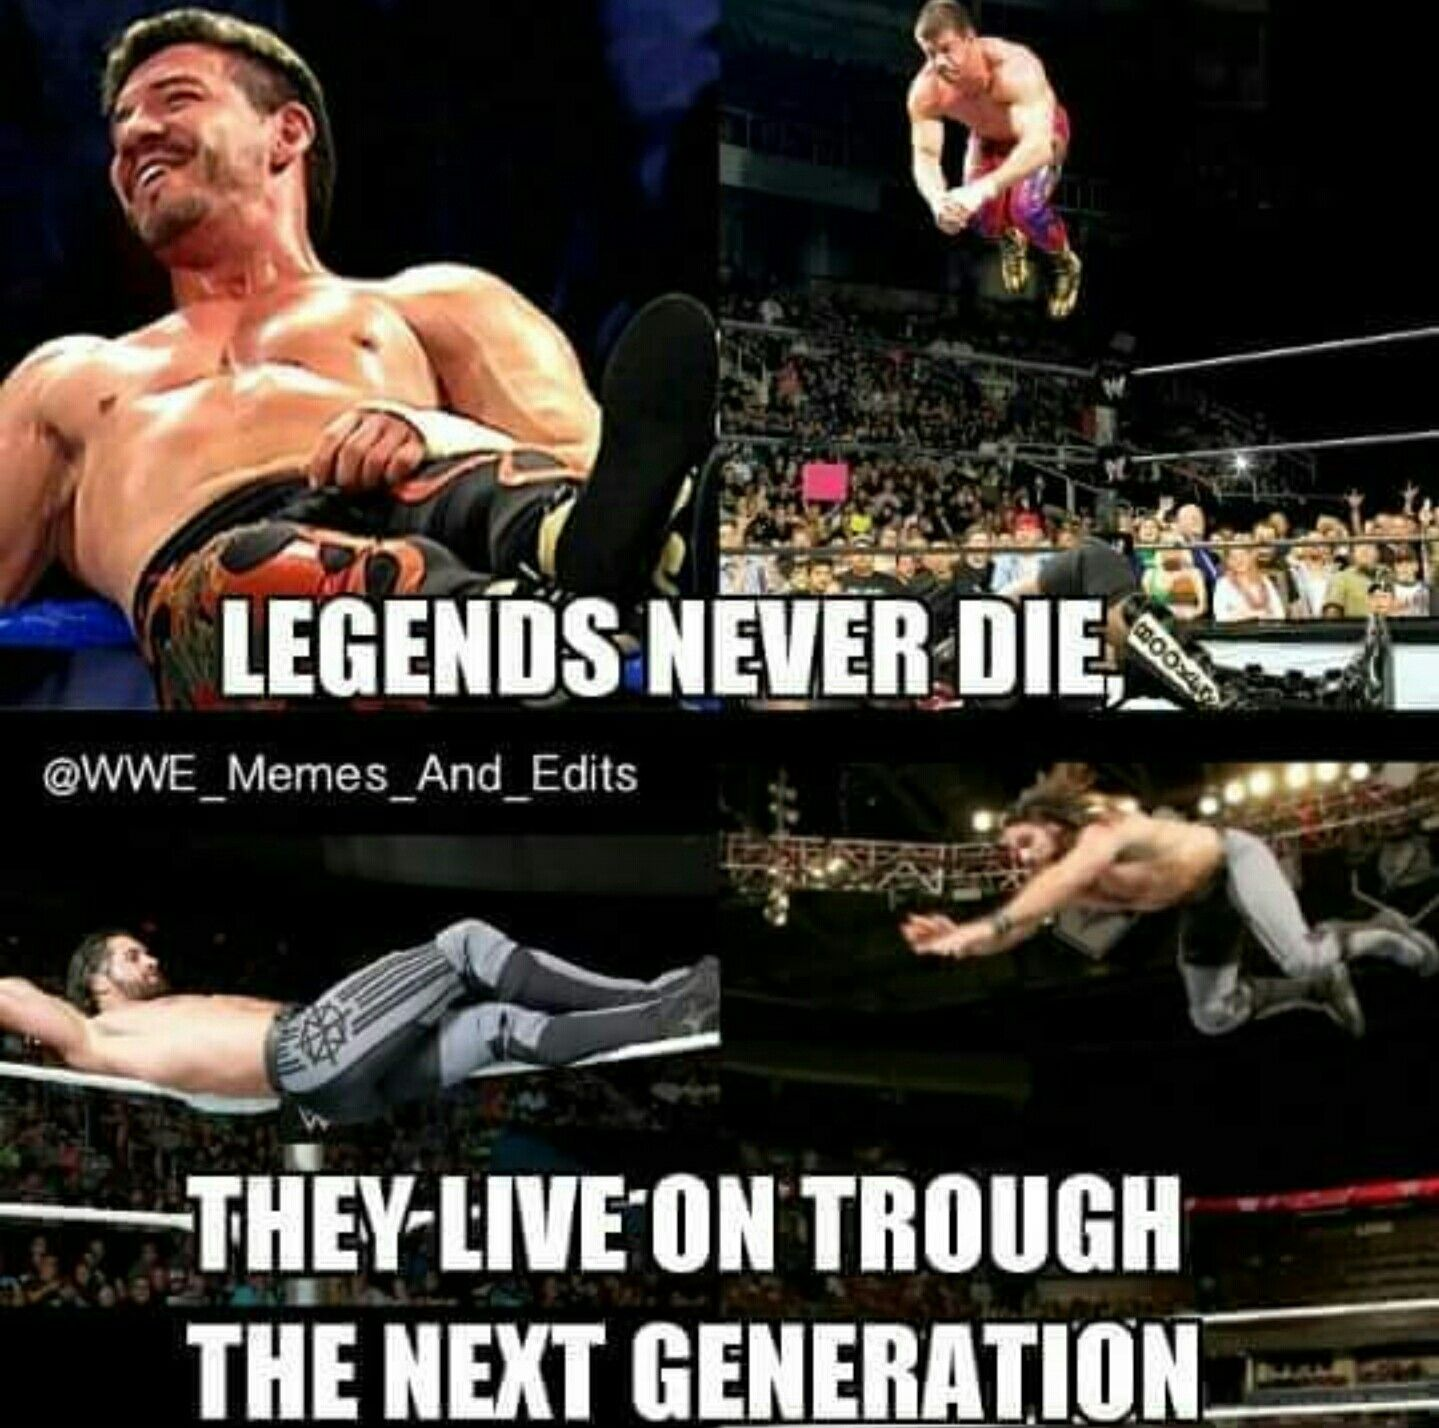 So True! Eddie Guerrero Was An Inspiration For Many In